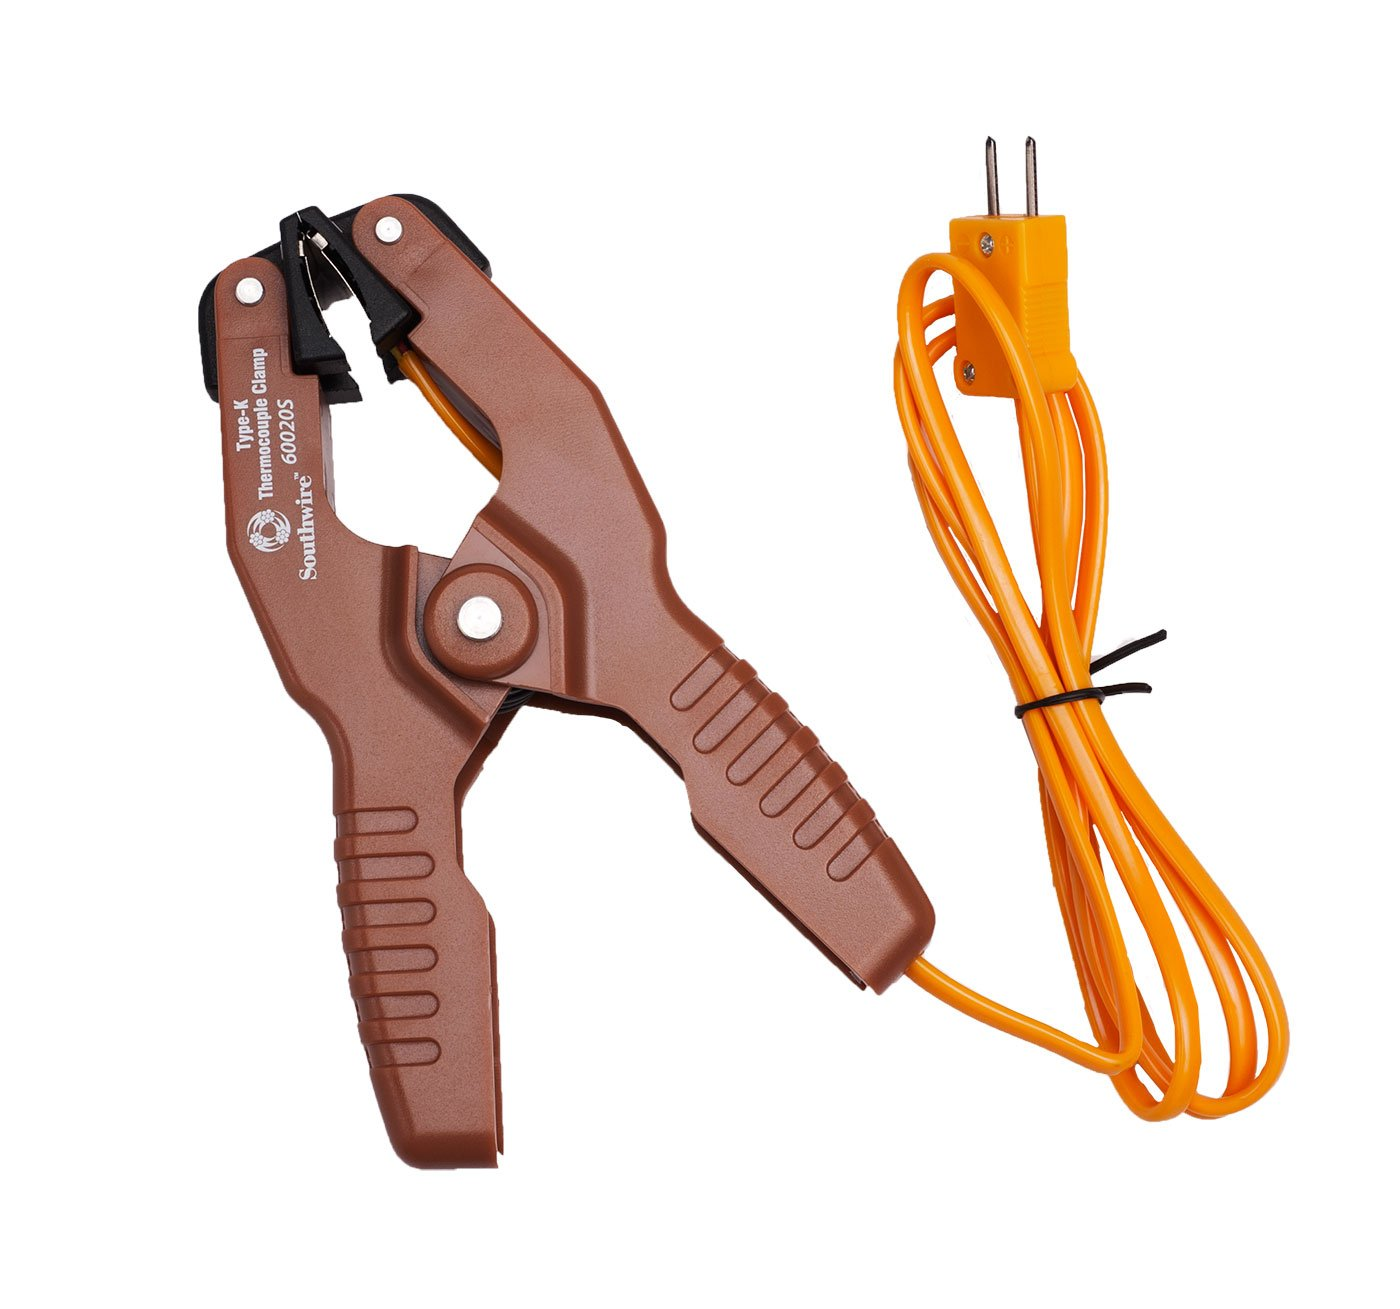 Southwire Tools & Equipment 60020S Type-K Temperature Clamp Probe ...